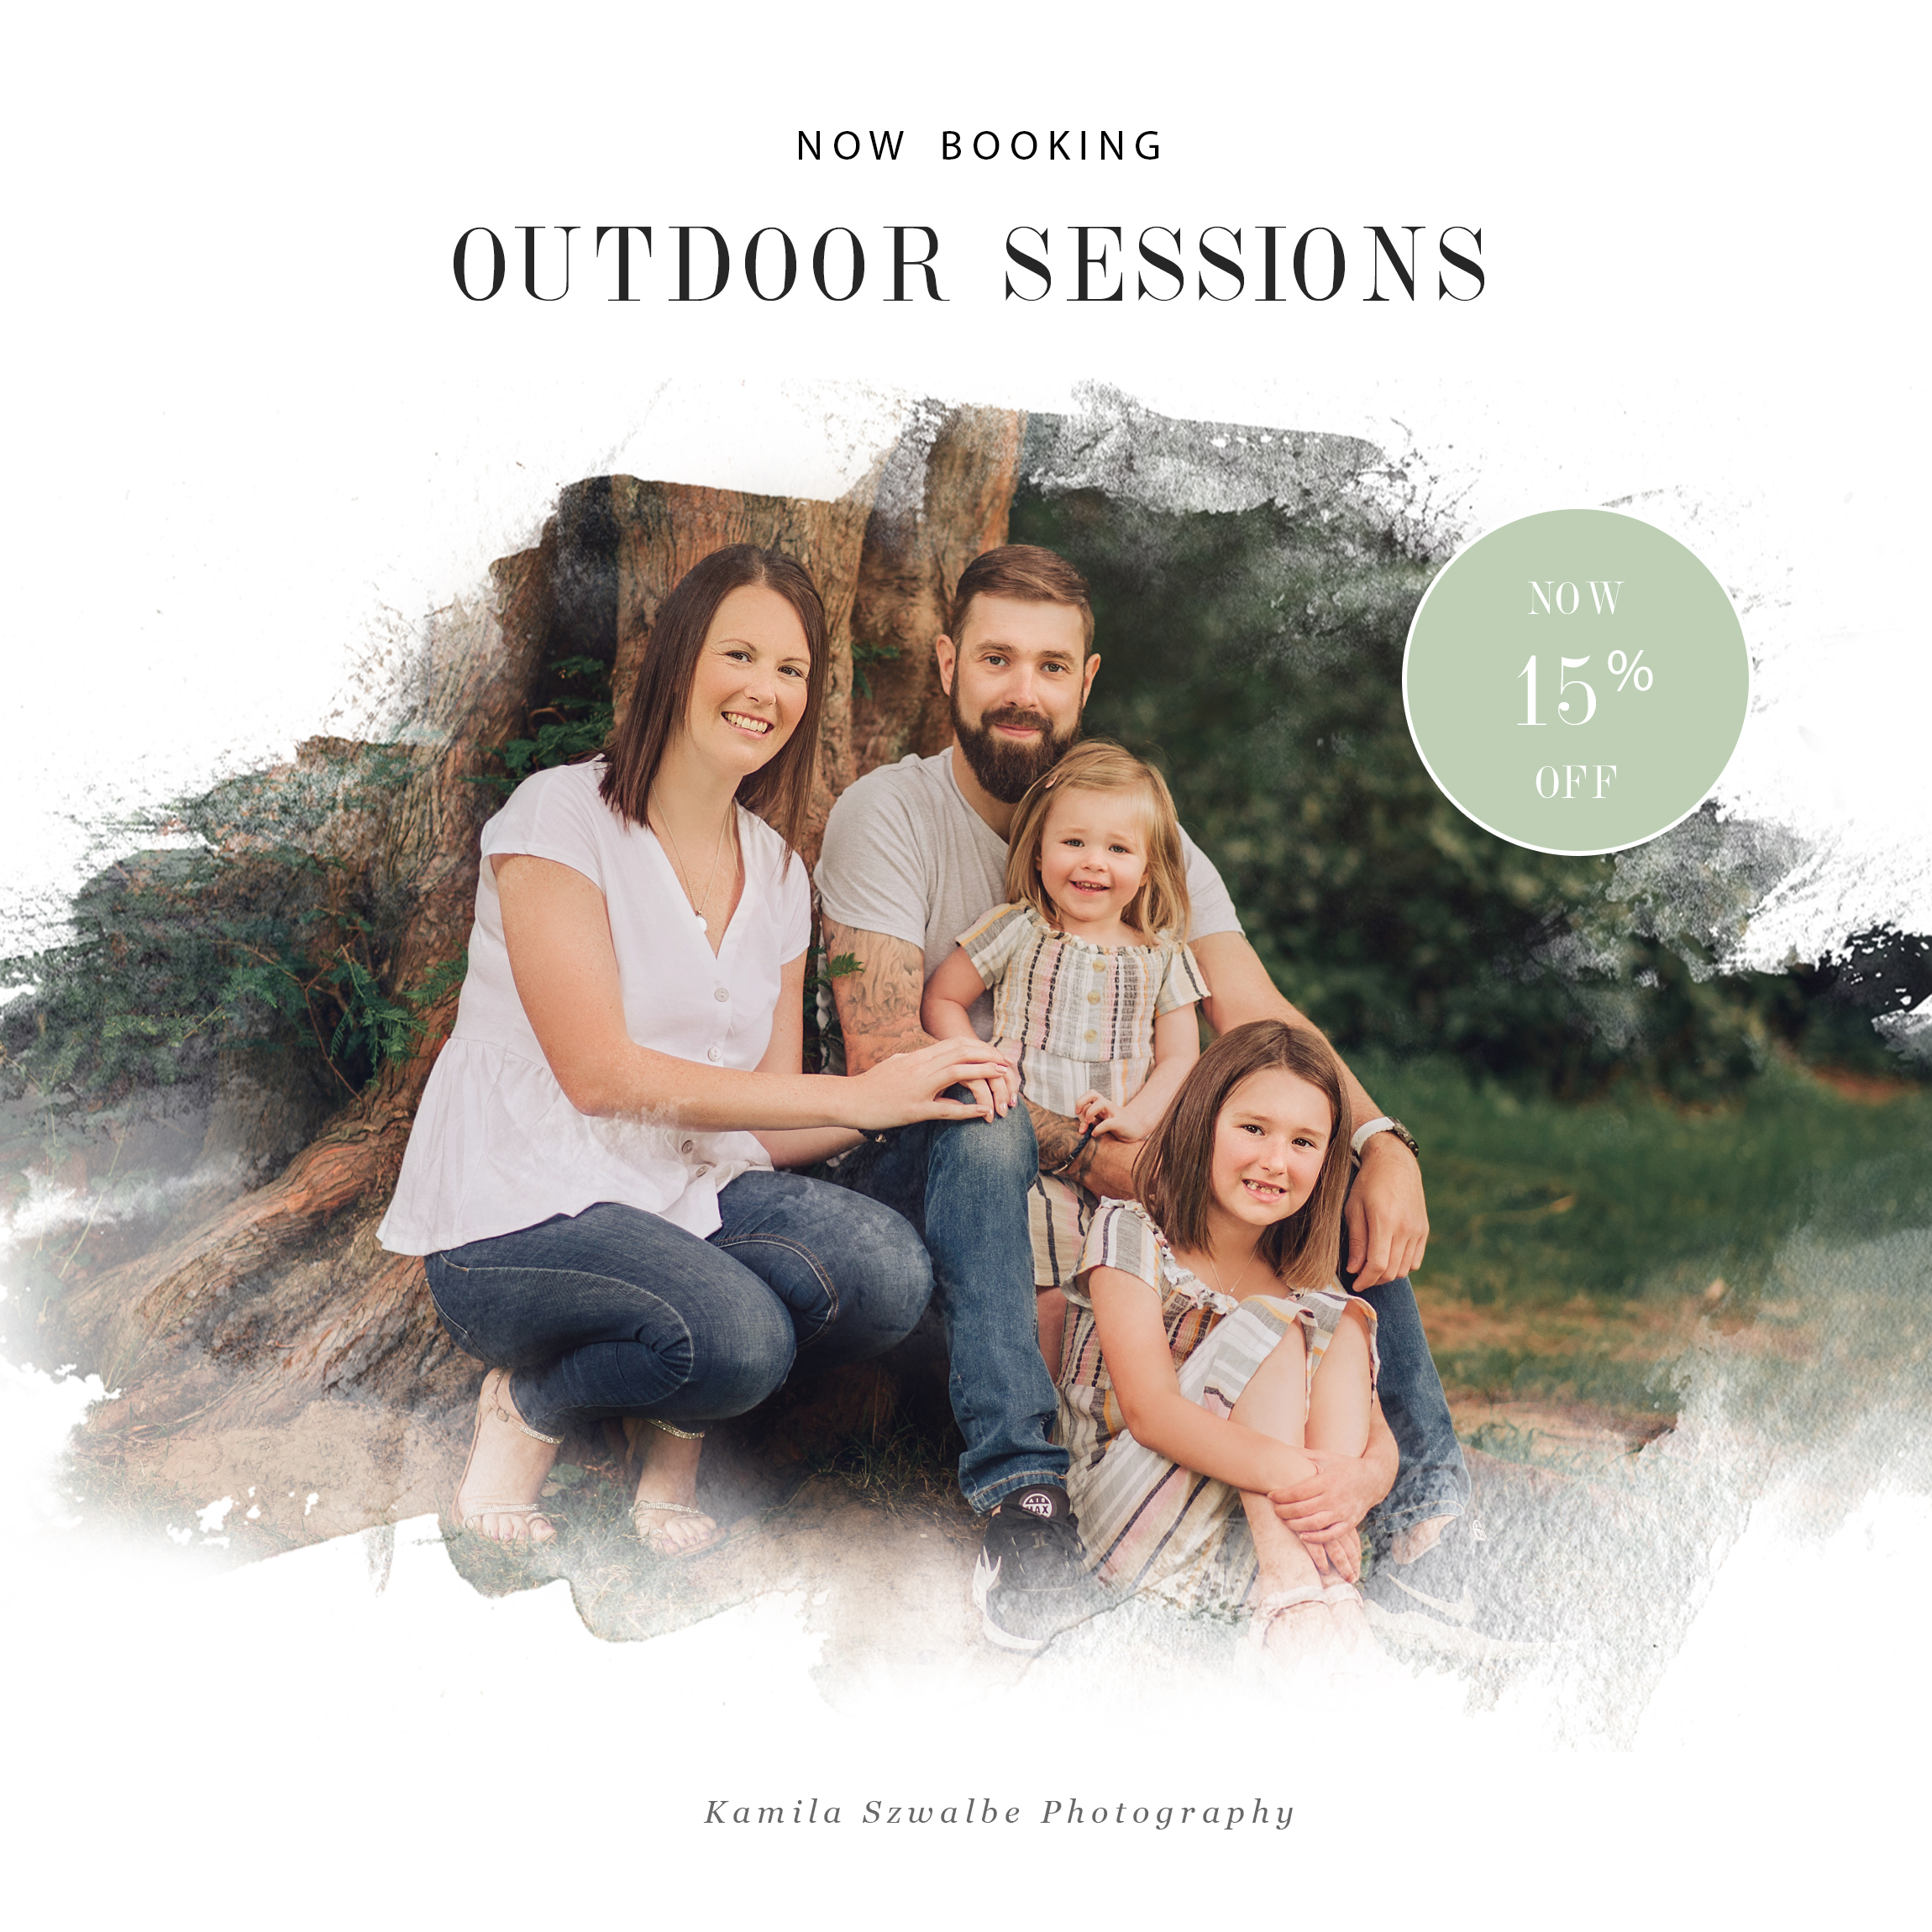 family sessions promotion